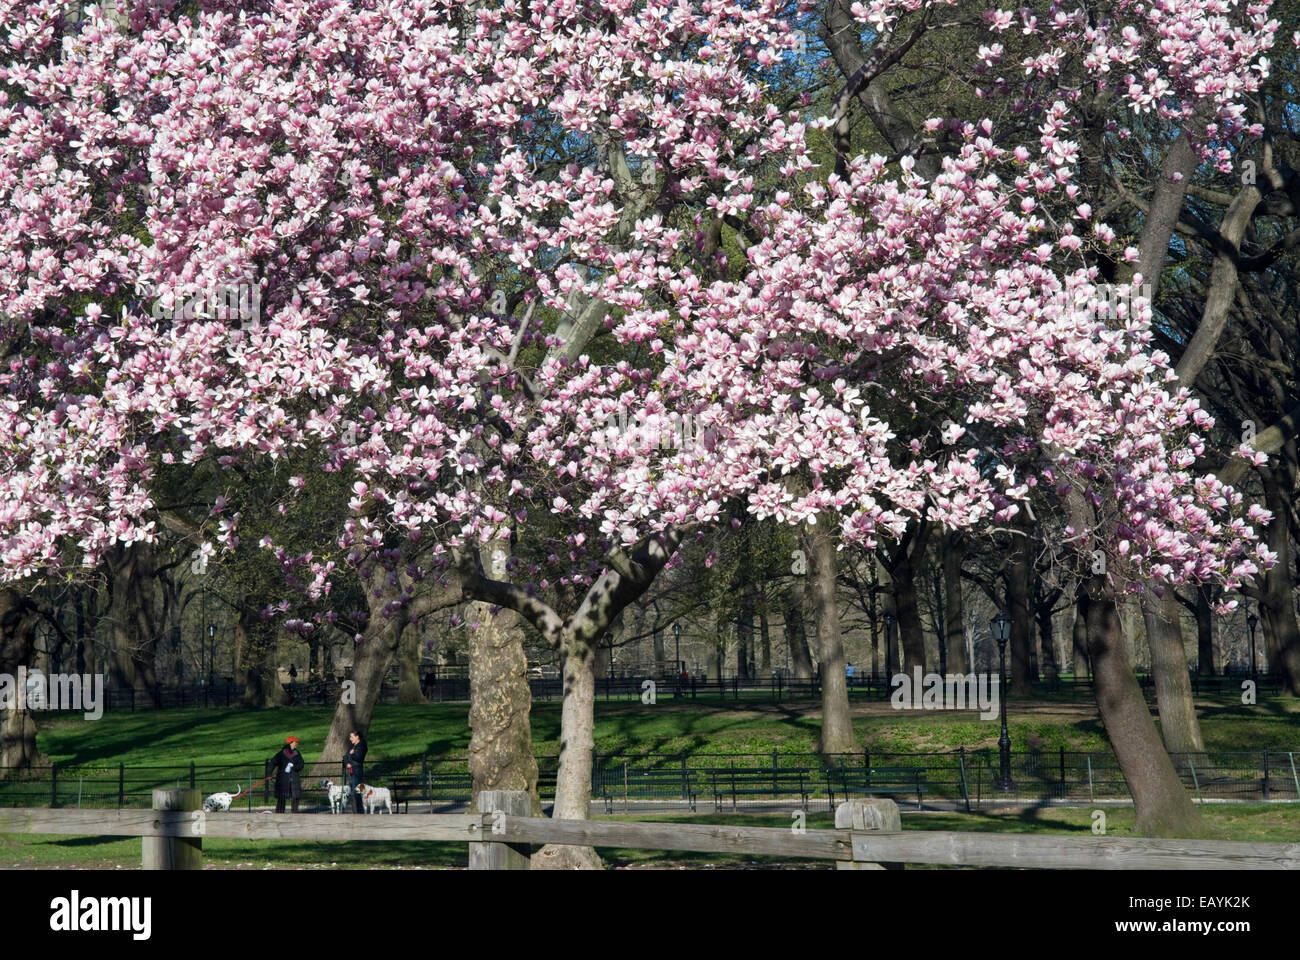 Magnolia Tree In Central Park New York City Stock Photo 75595707